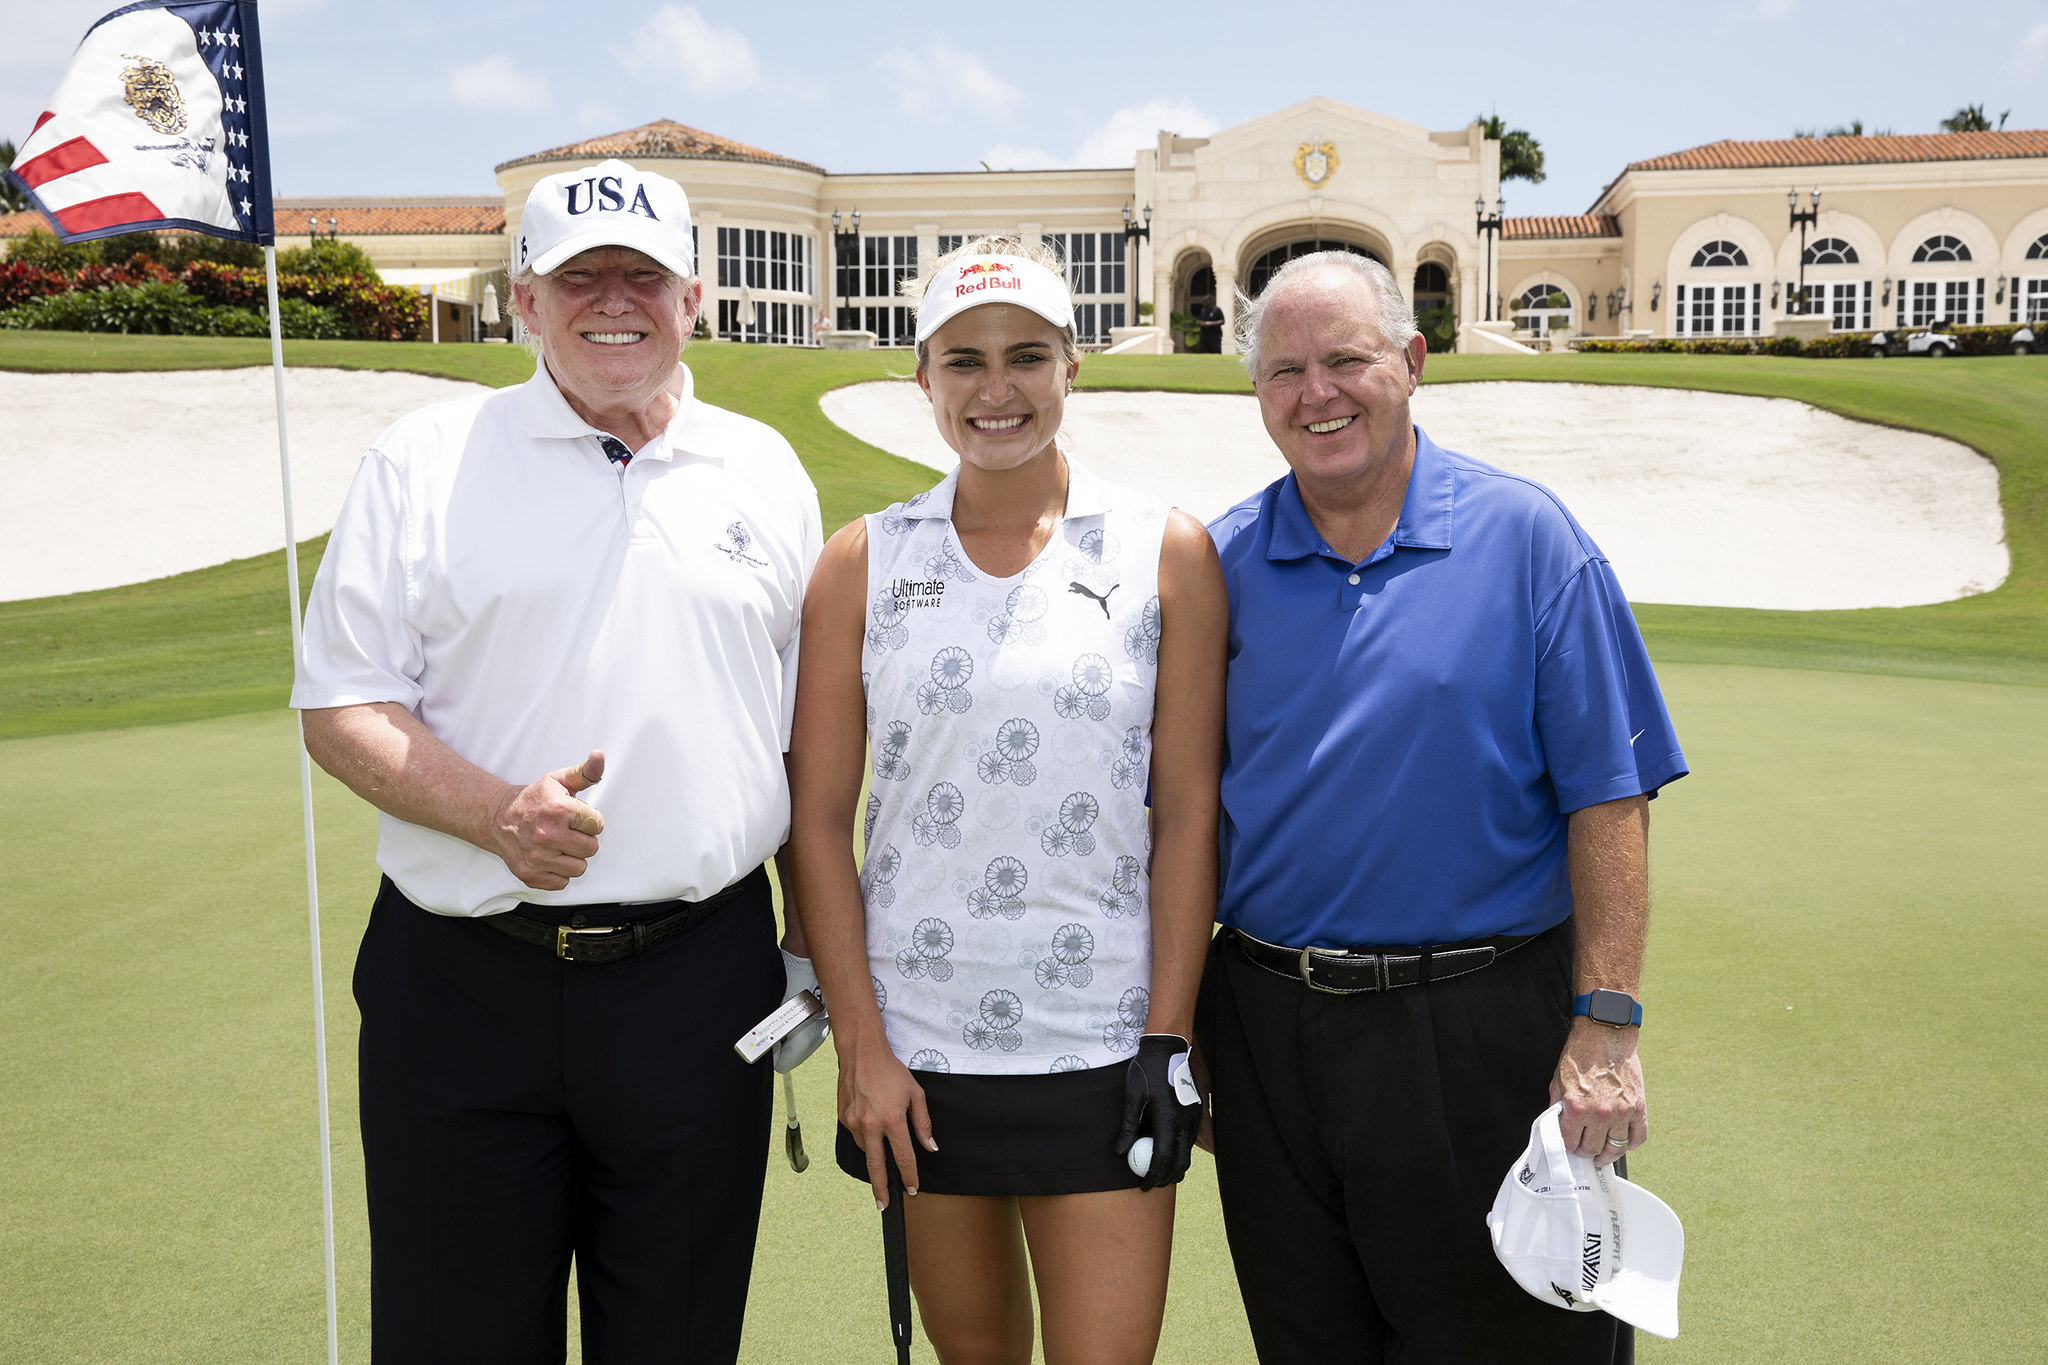 How much is Trump's taxpayer-paid golf bill? $108.1 million and counting